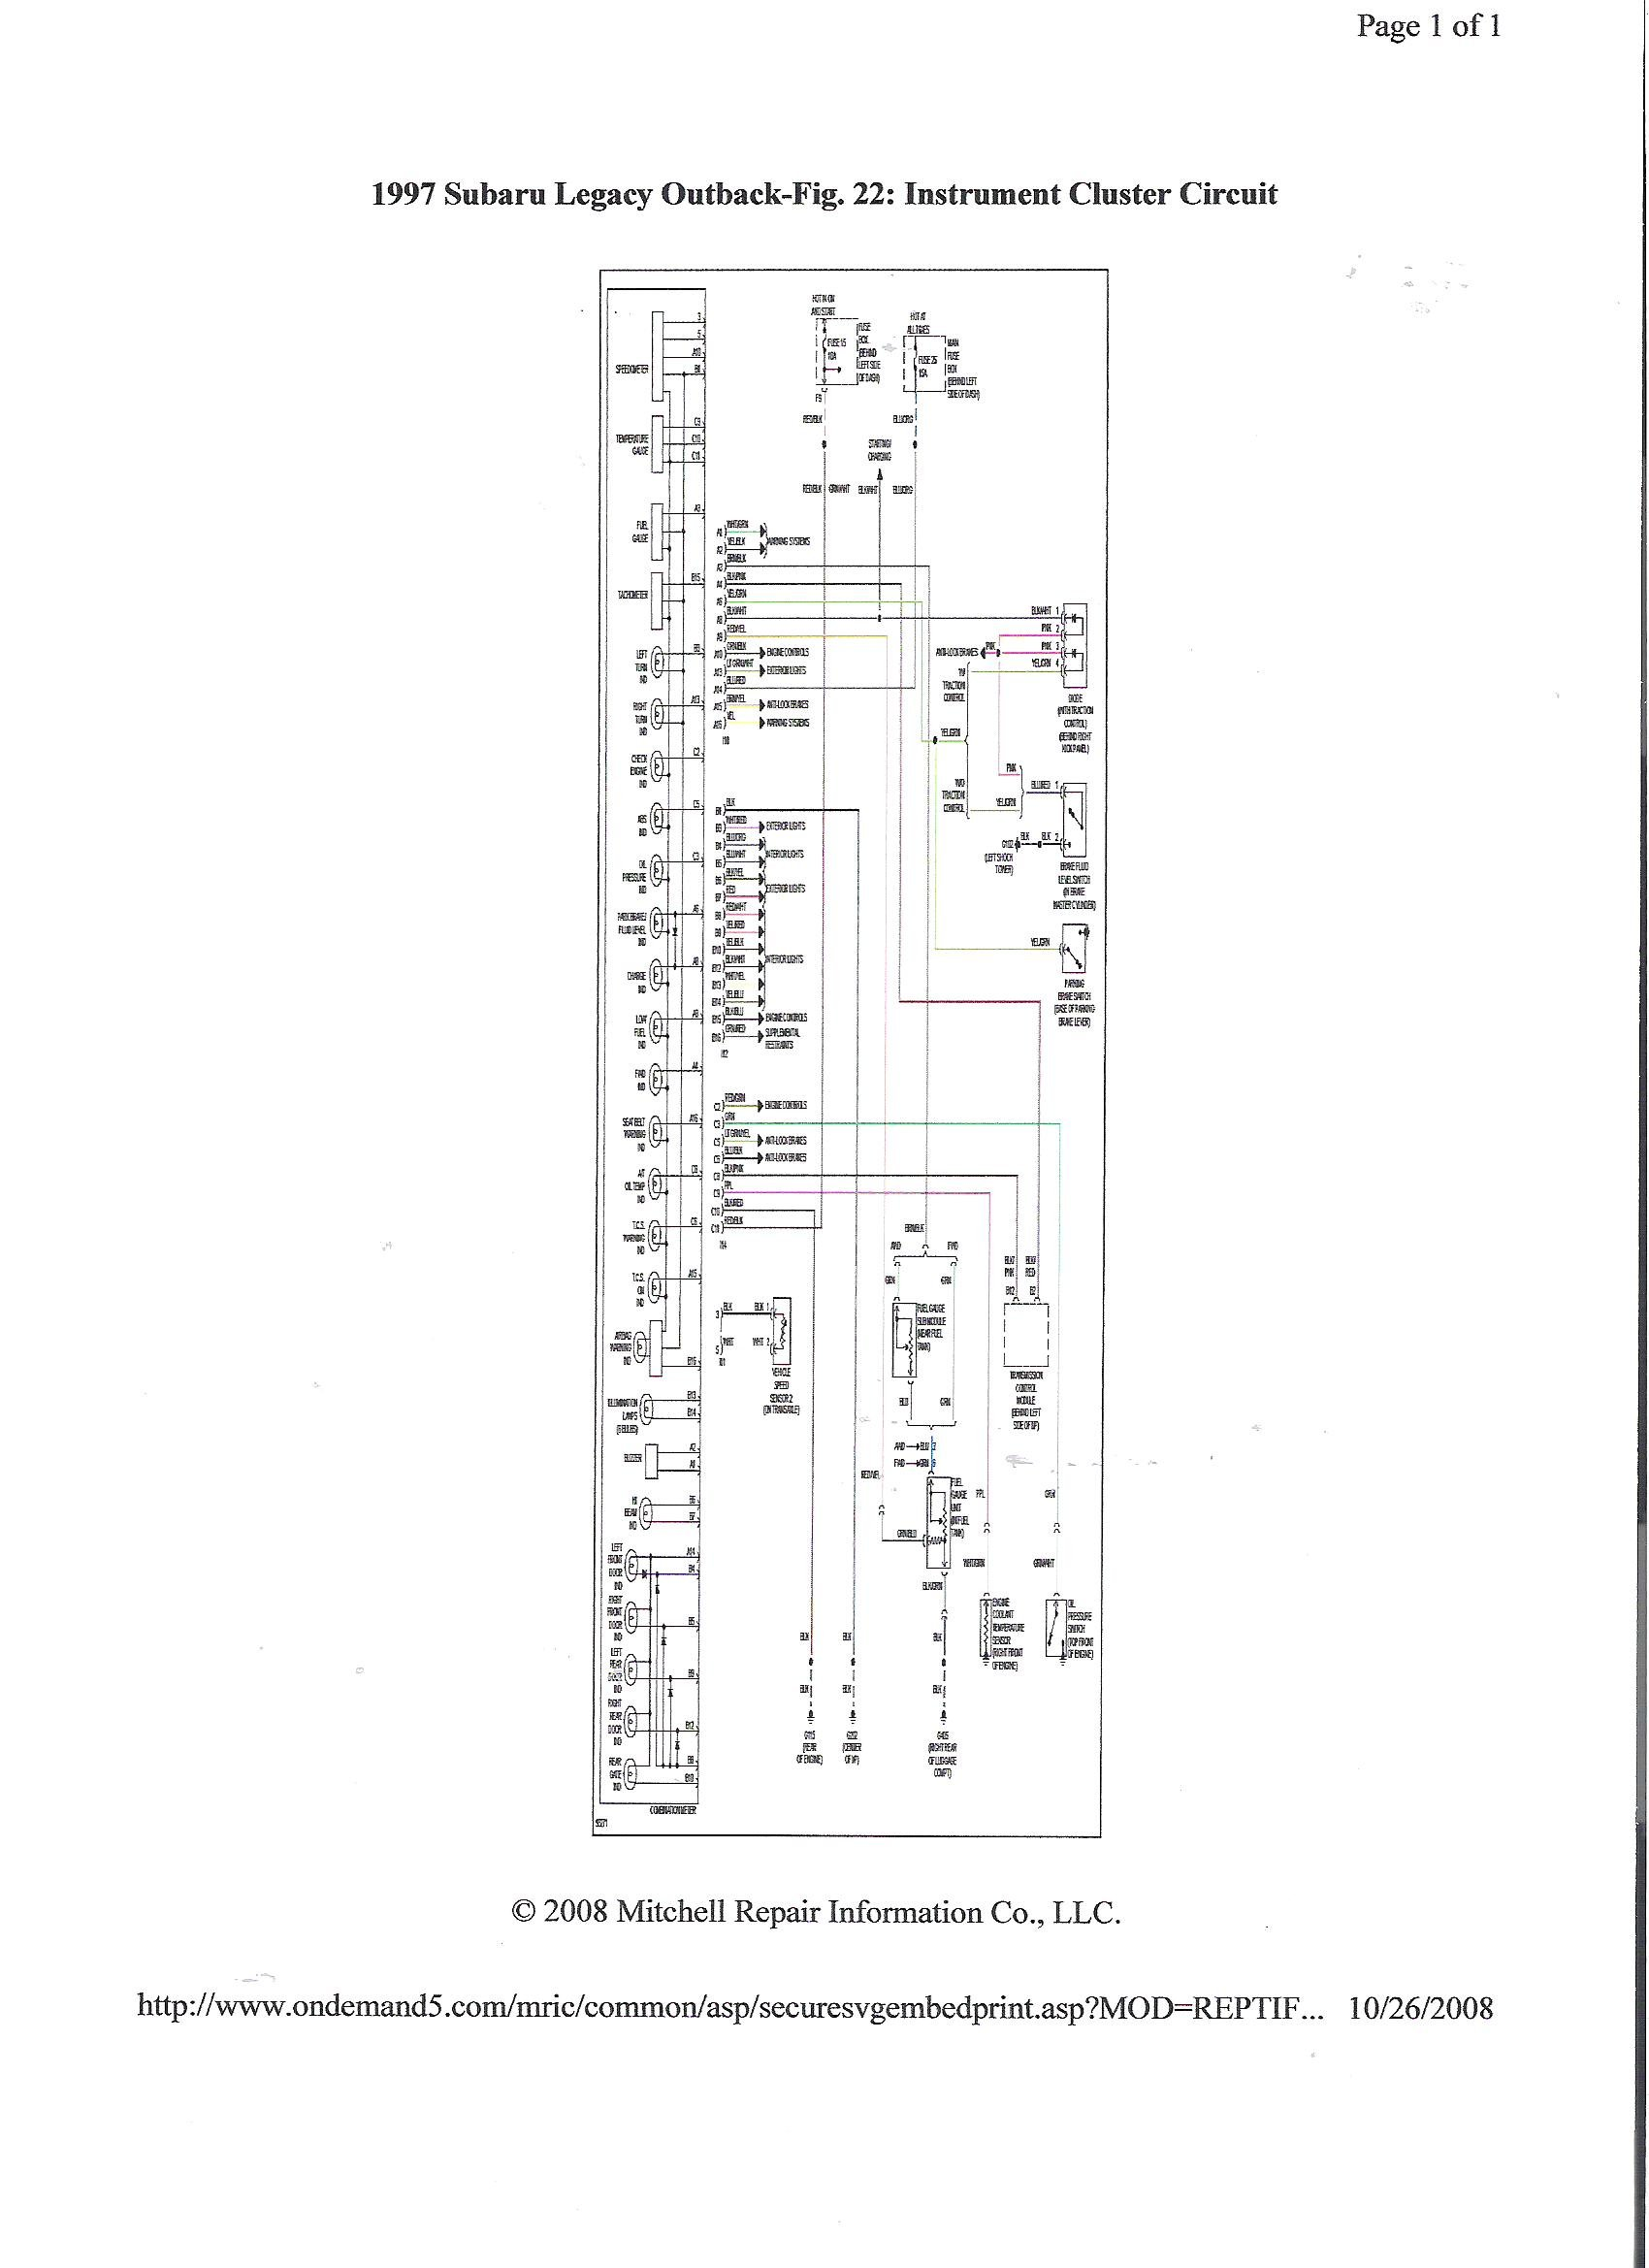 1997 Subaru Outback Turn Signal Wiring Diagram Schematics 96 Impreza Stereo 2 5 Speedo Problems It Works Great If Legacy